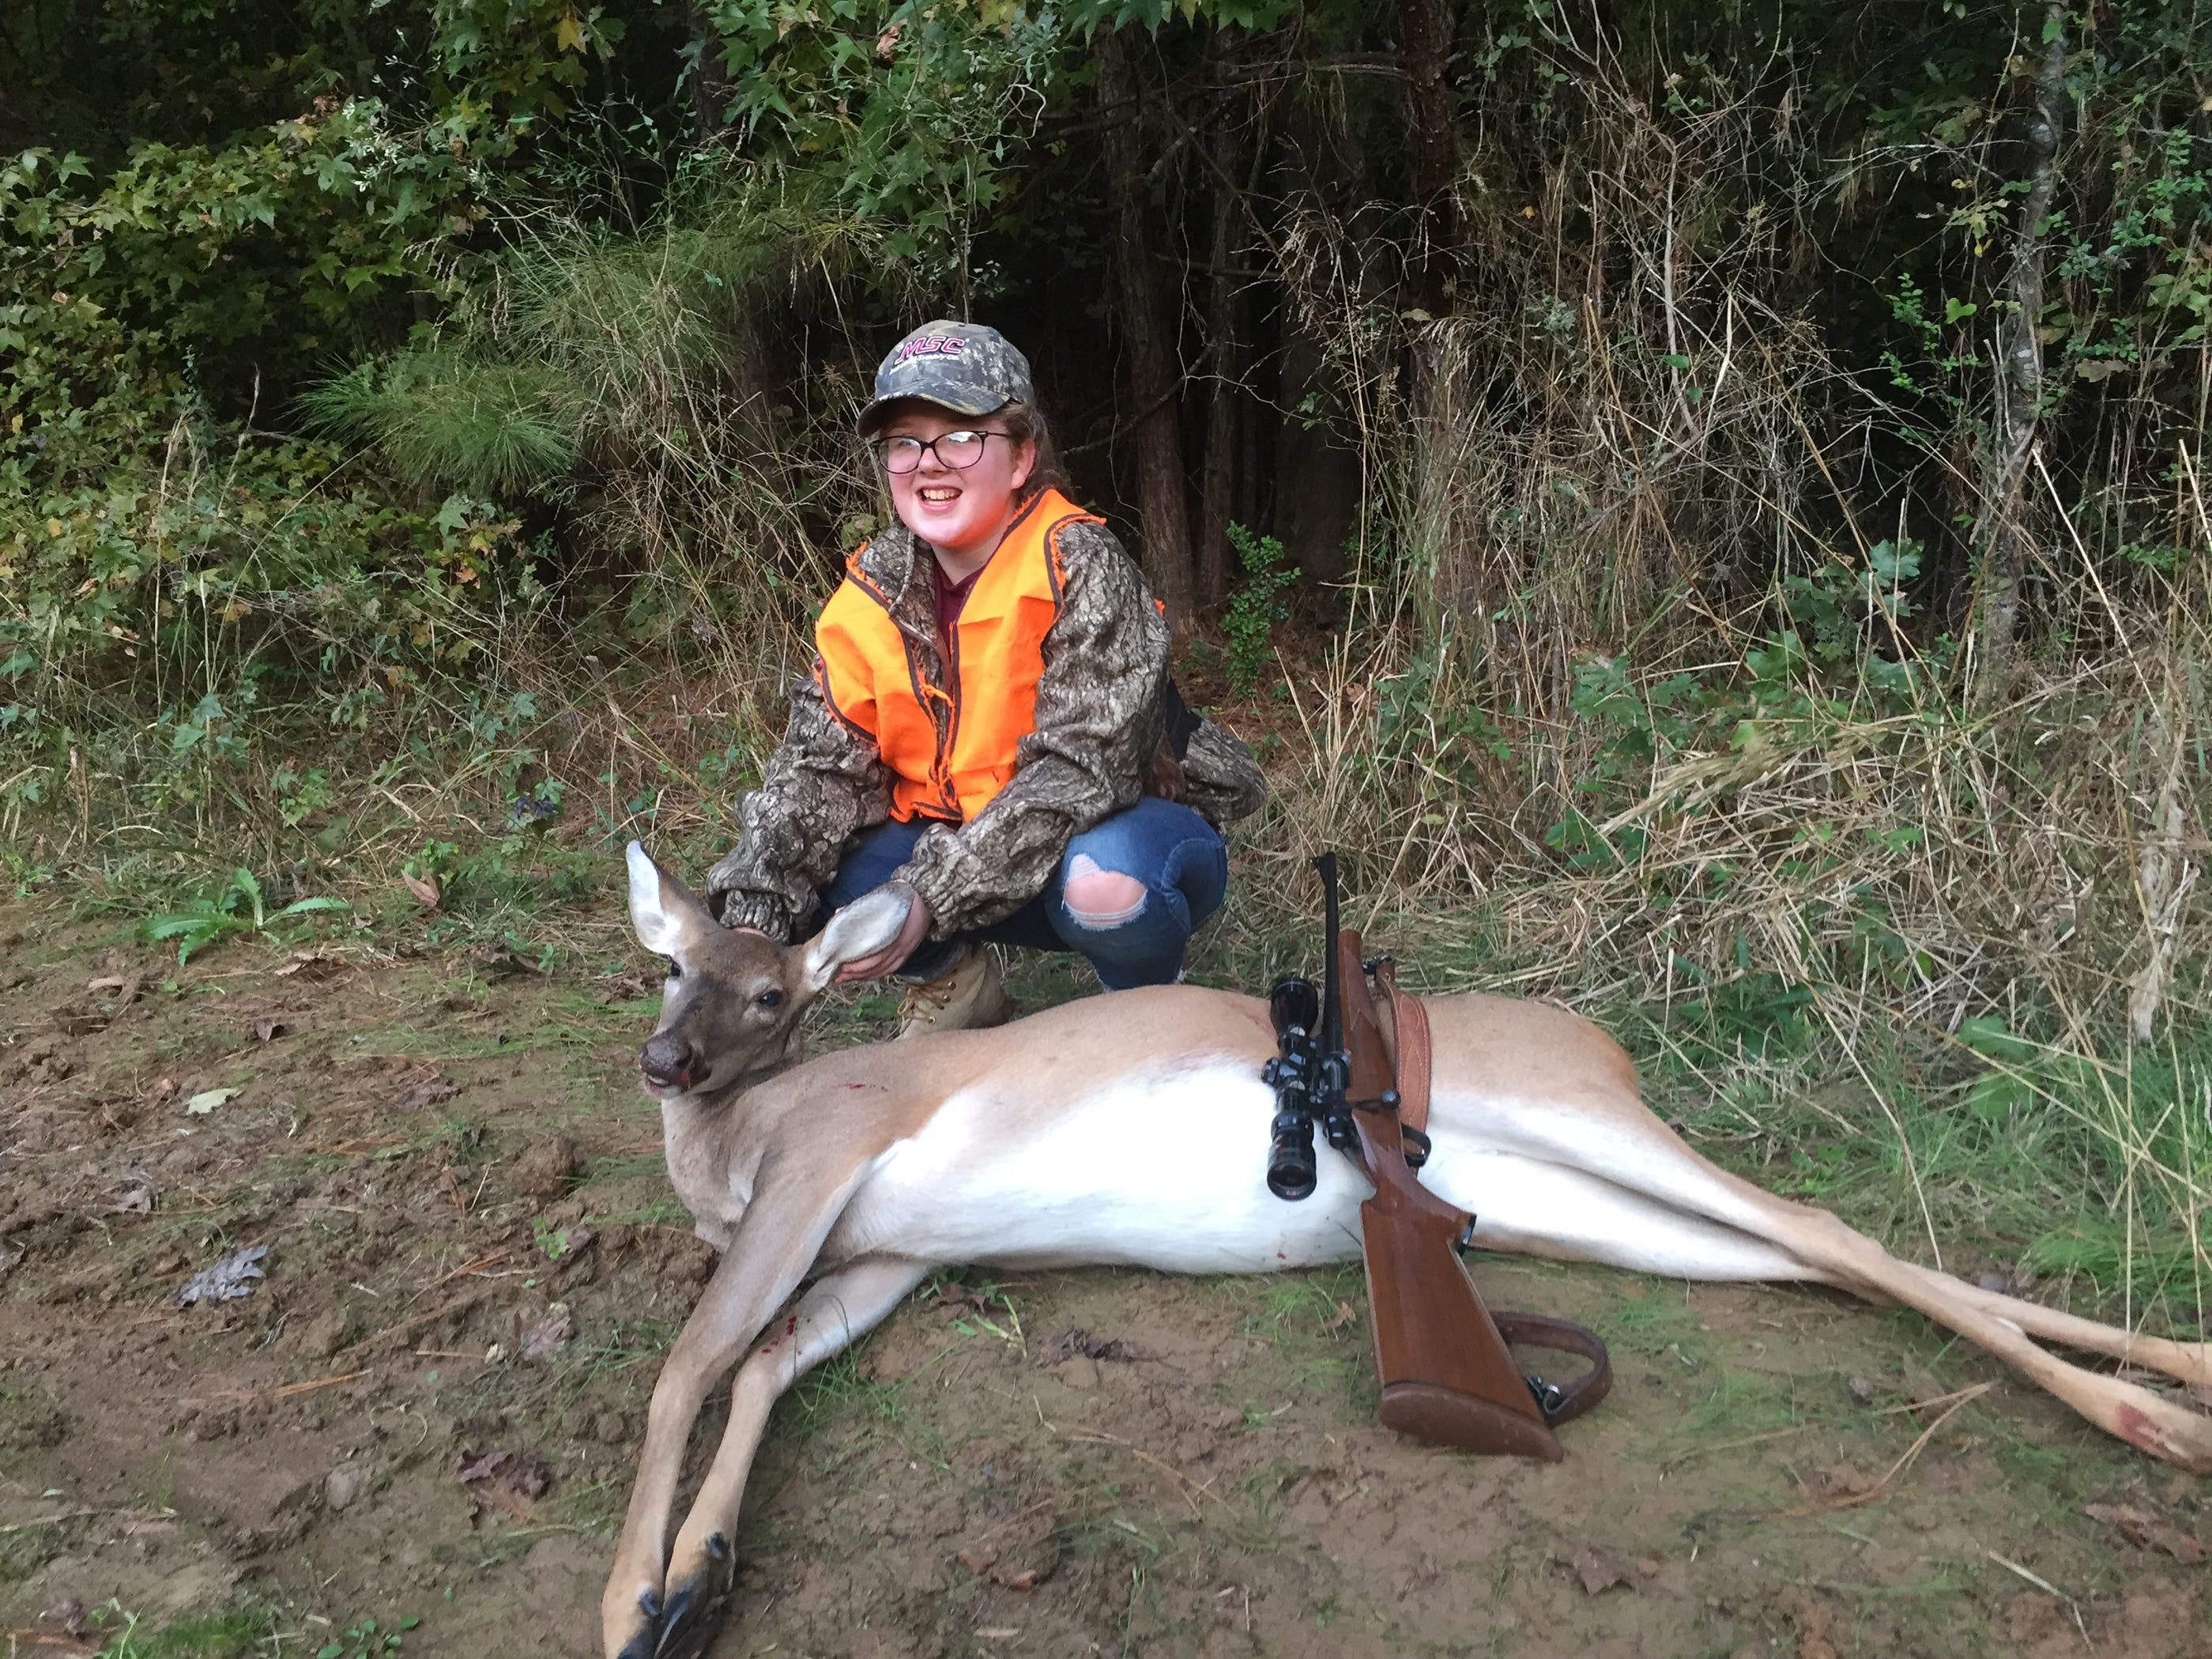 Lucy Pope, 11, of Clinton, harvested her first deer while hunting on family land with her grandfather.